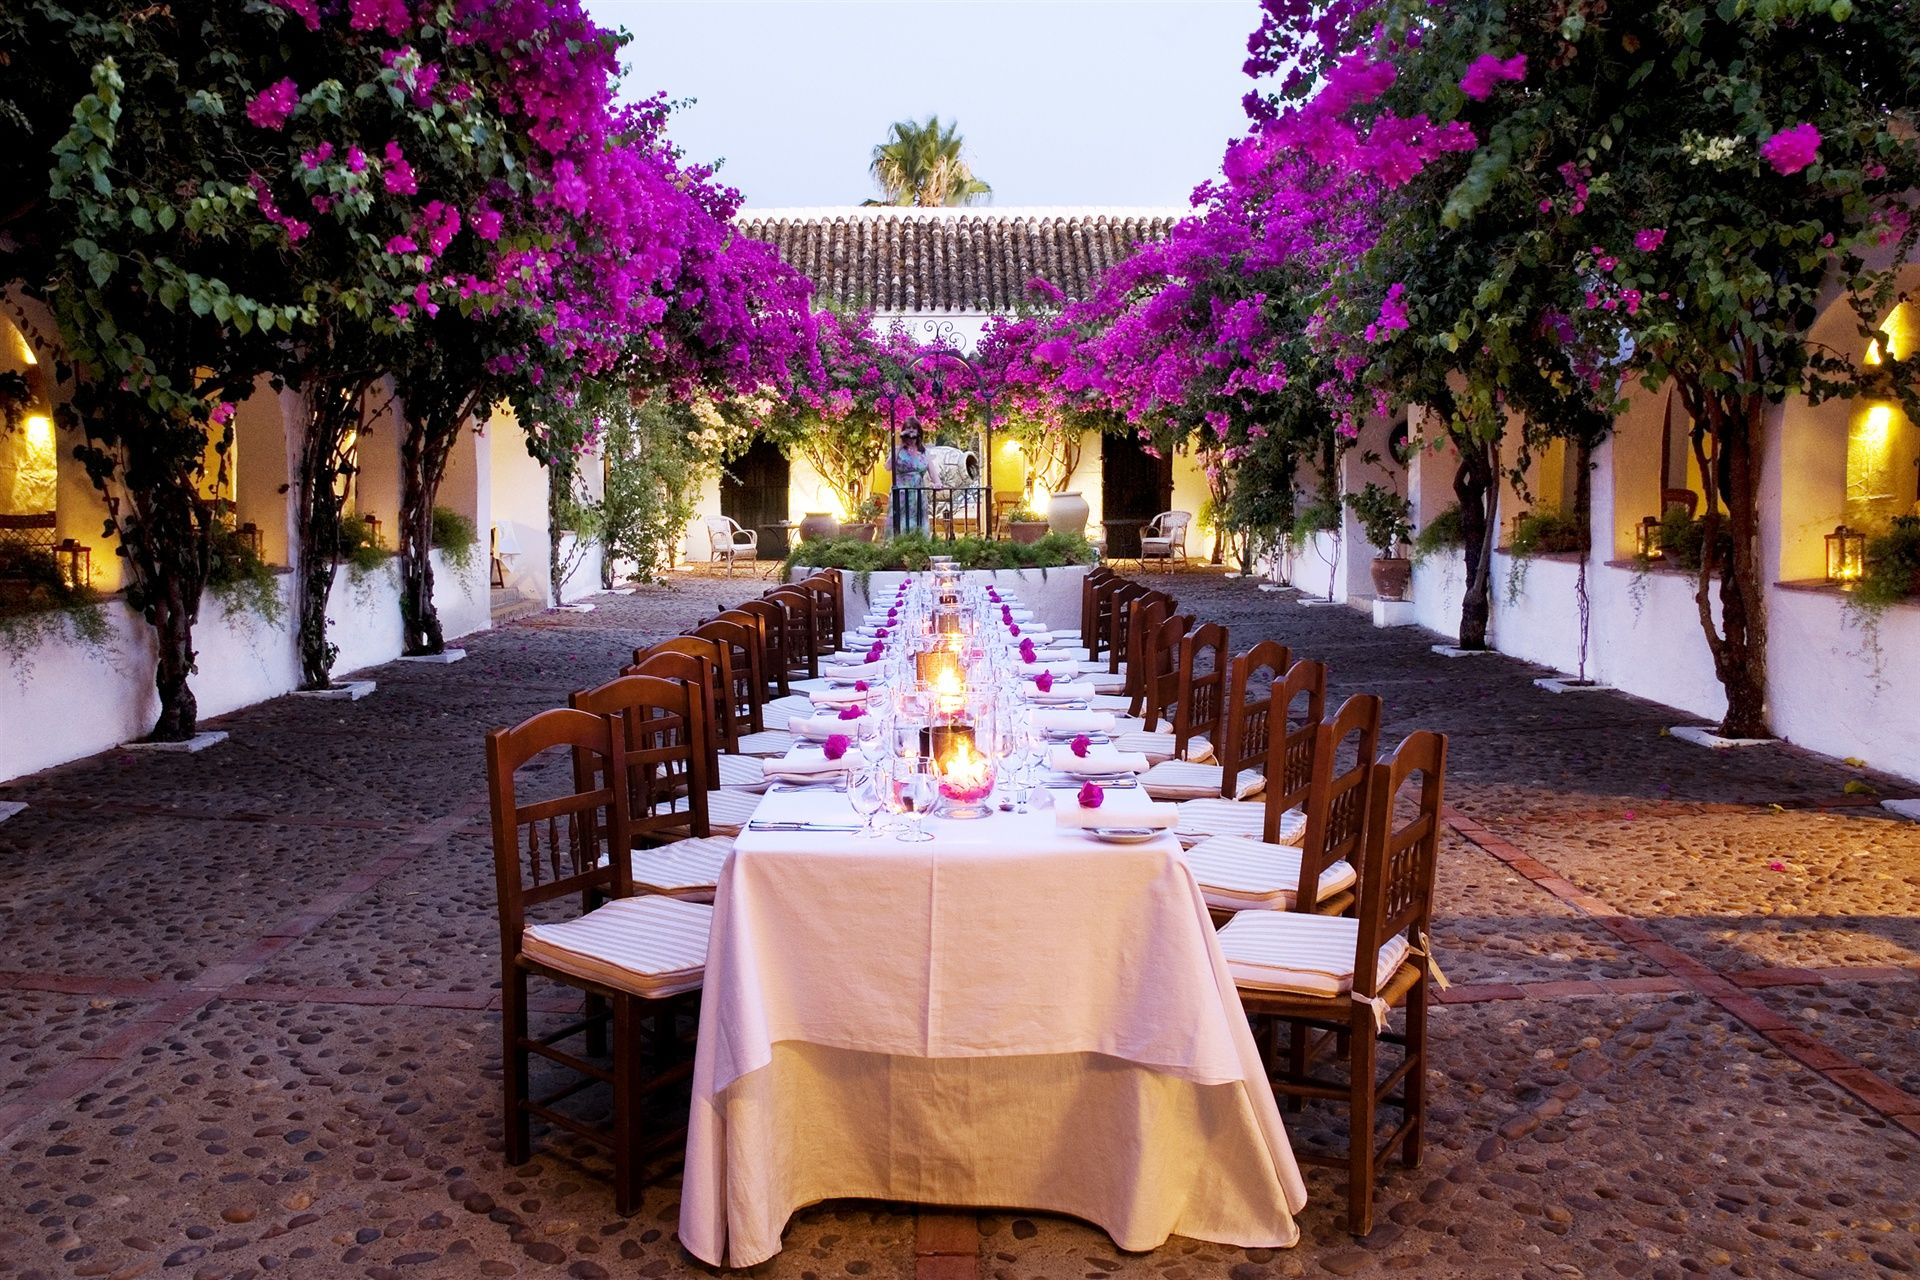 Jeanie S Birthday Celebration Hacienda De San Rafael Seville Spain So Fabulous